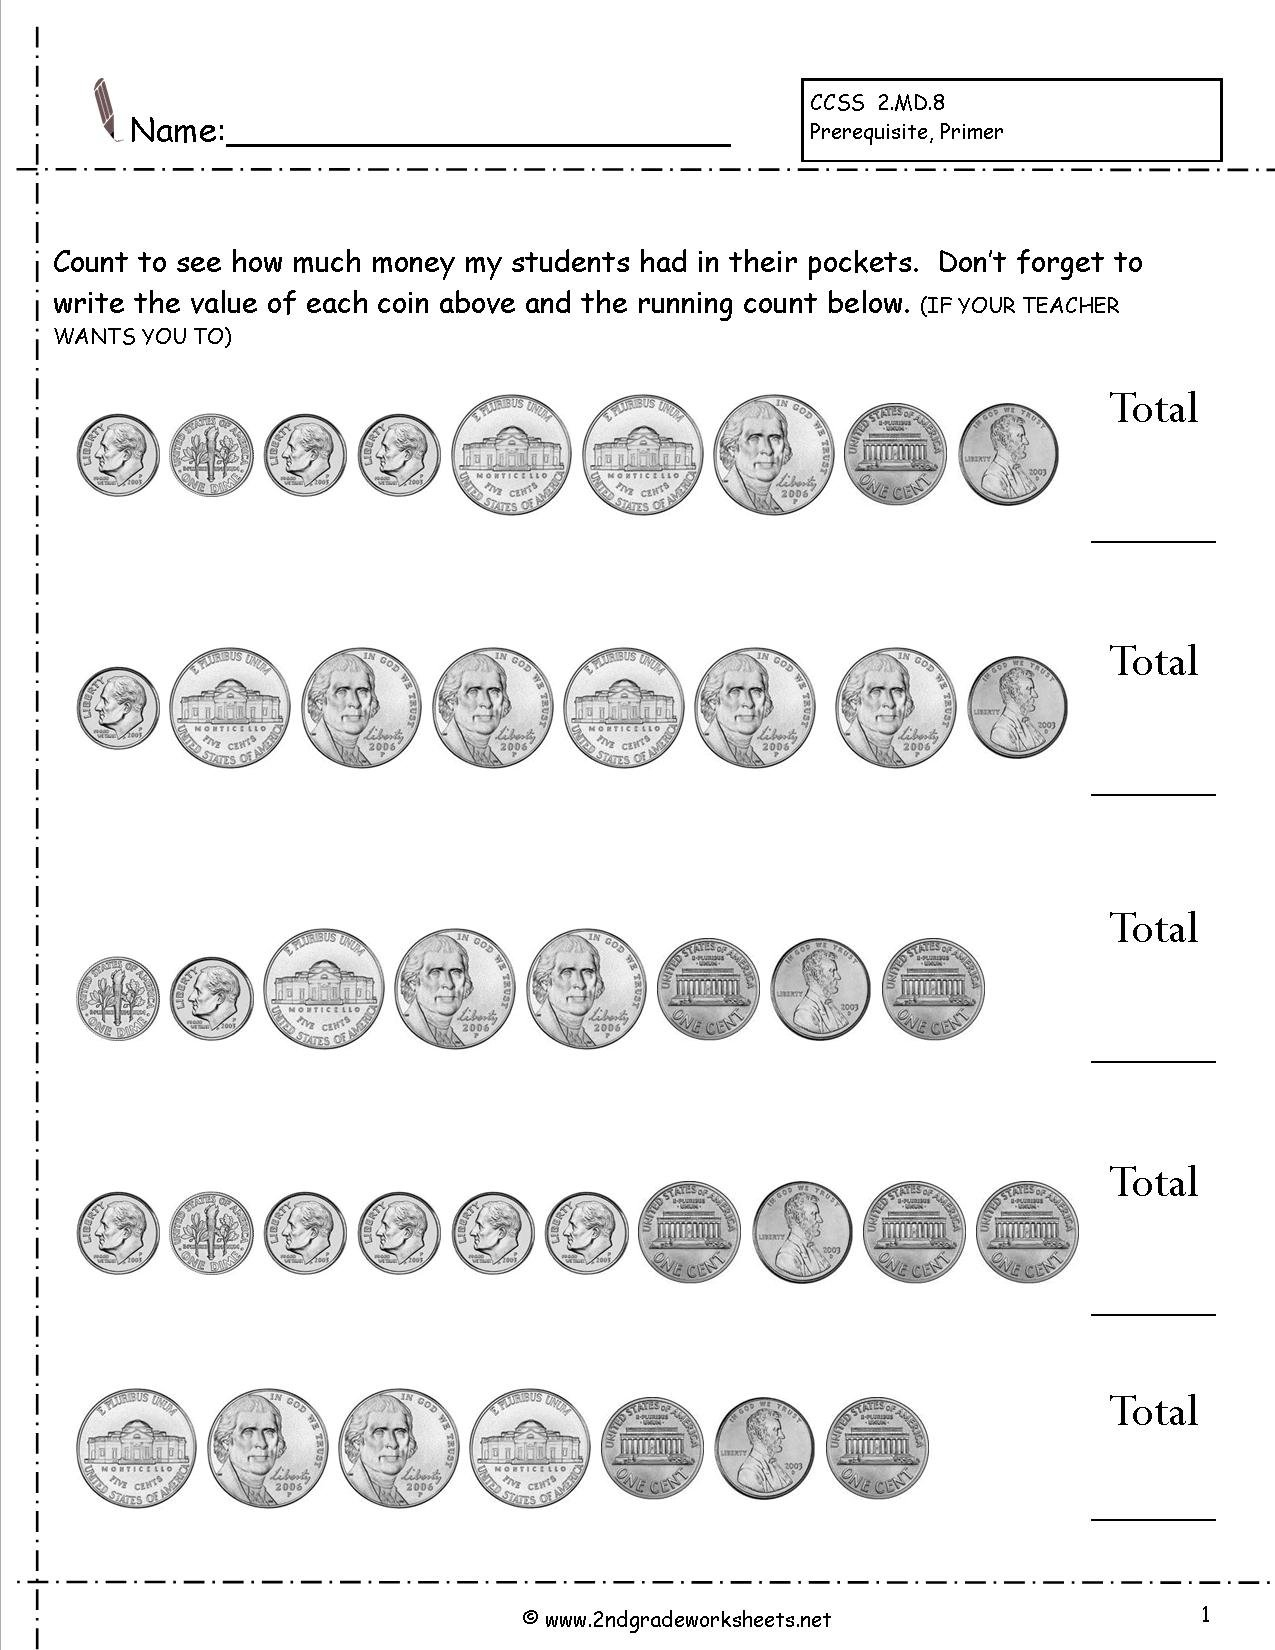 Counting Coins And Money Worksheets And Printouts Intended For Coin Values Worksheet